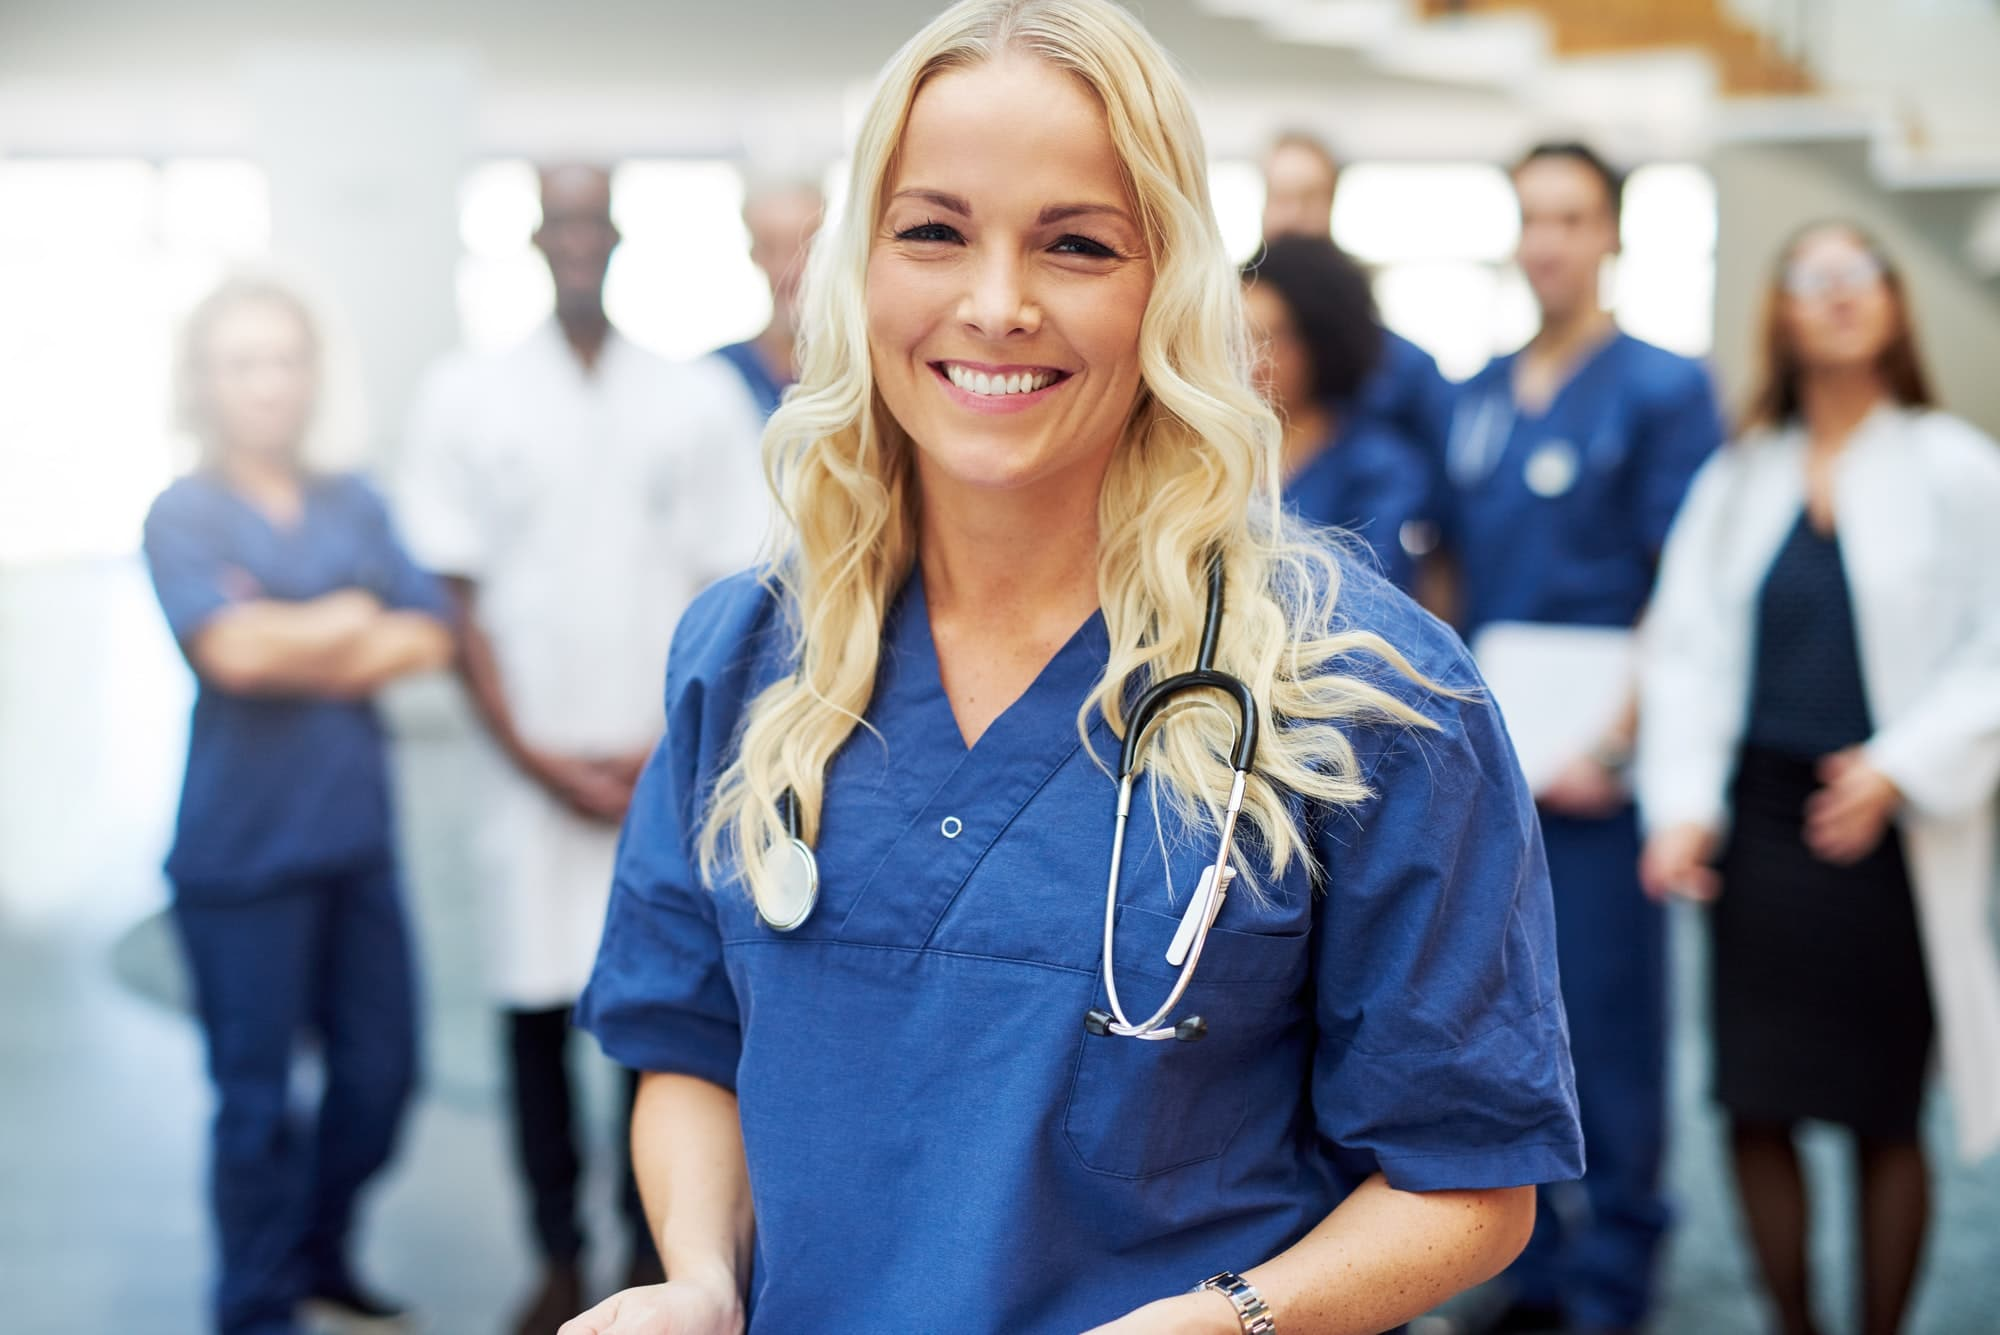 Smiling blond doctor with stethoscope in hospital